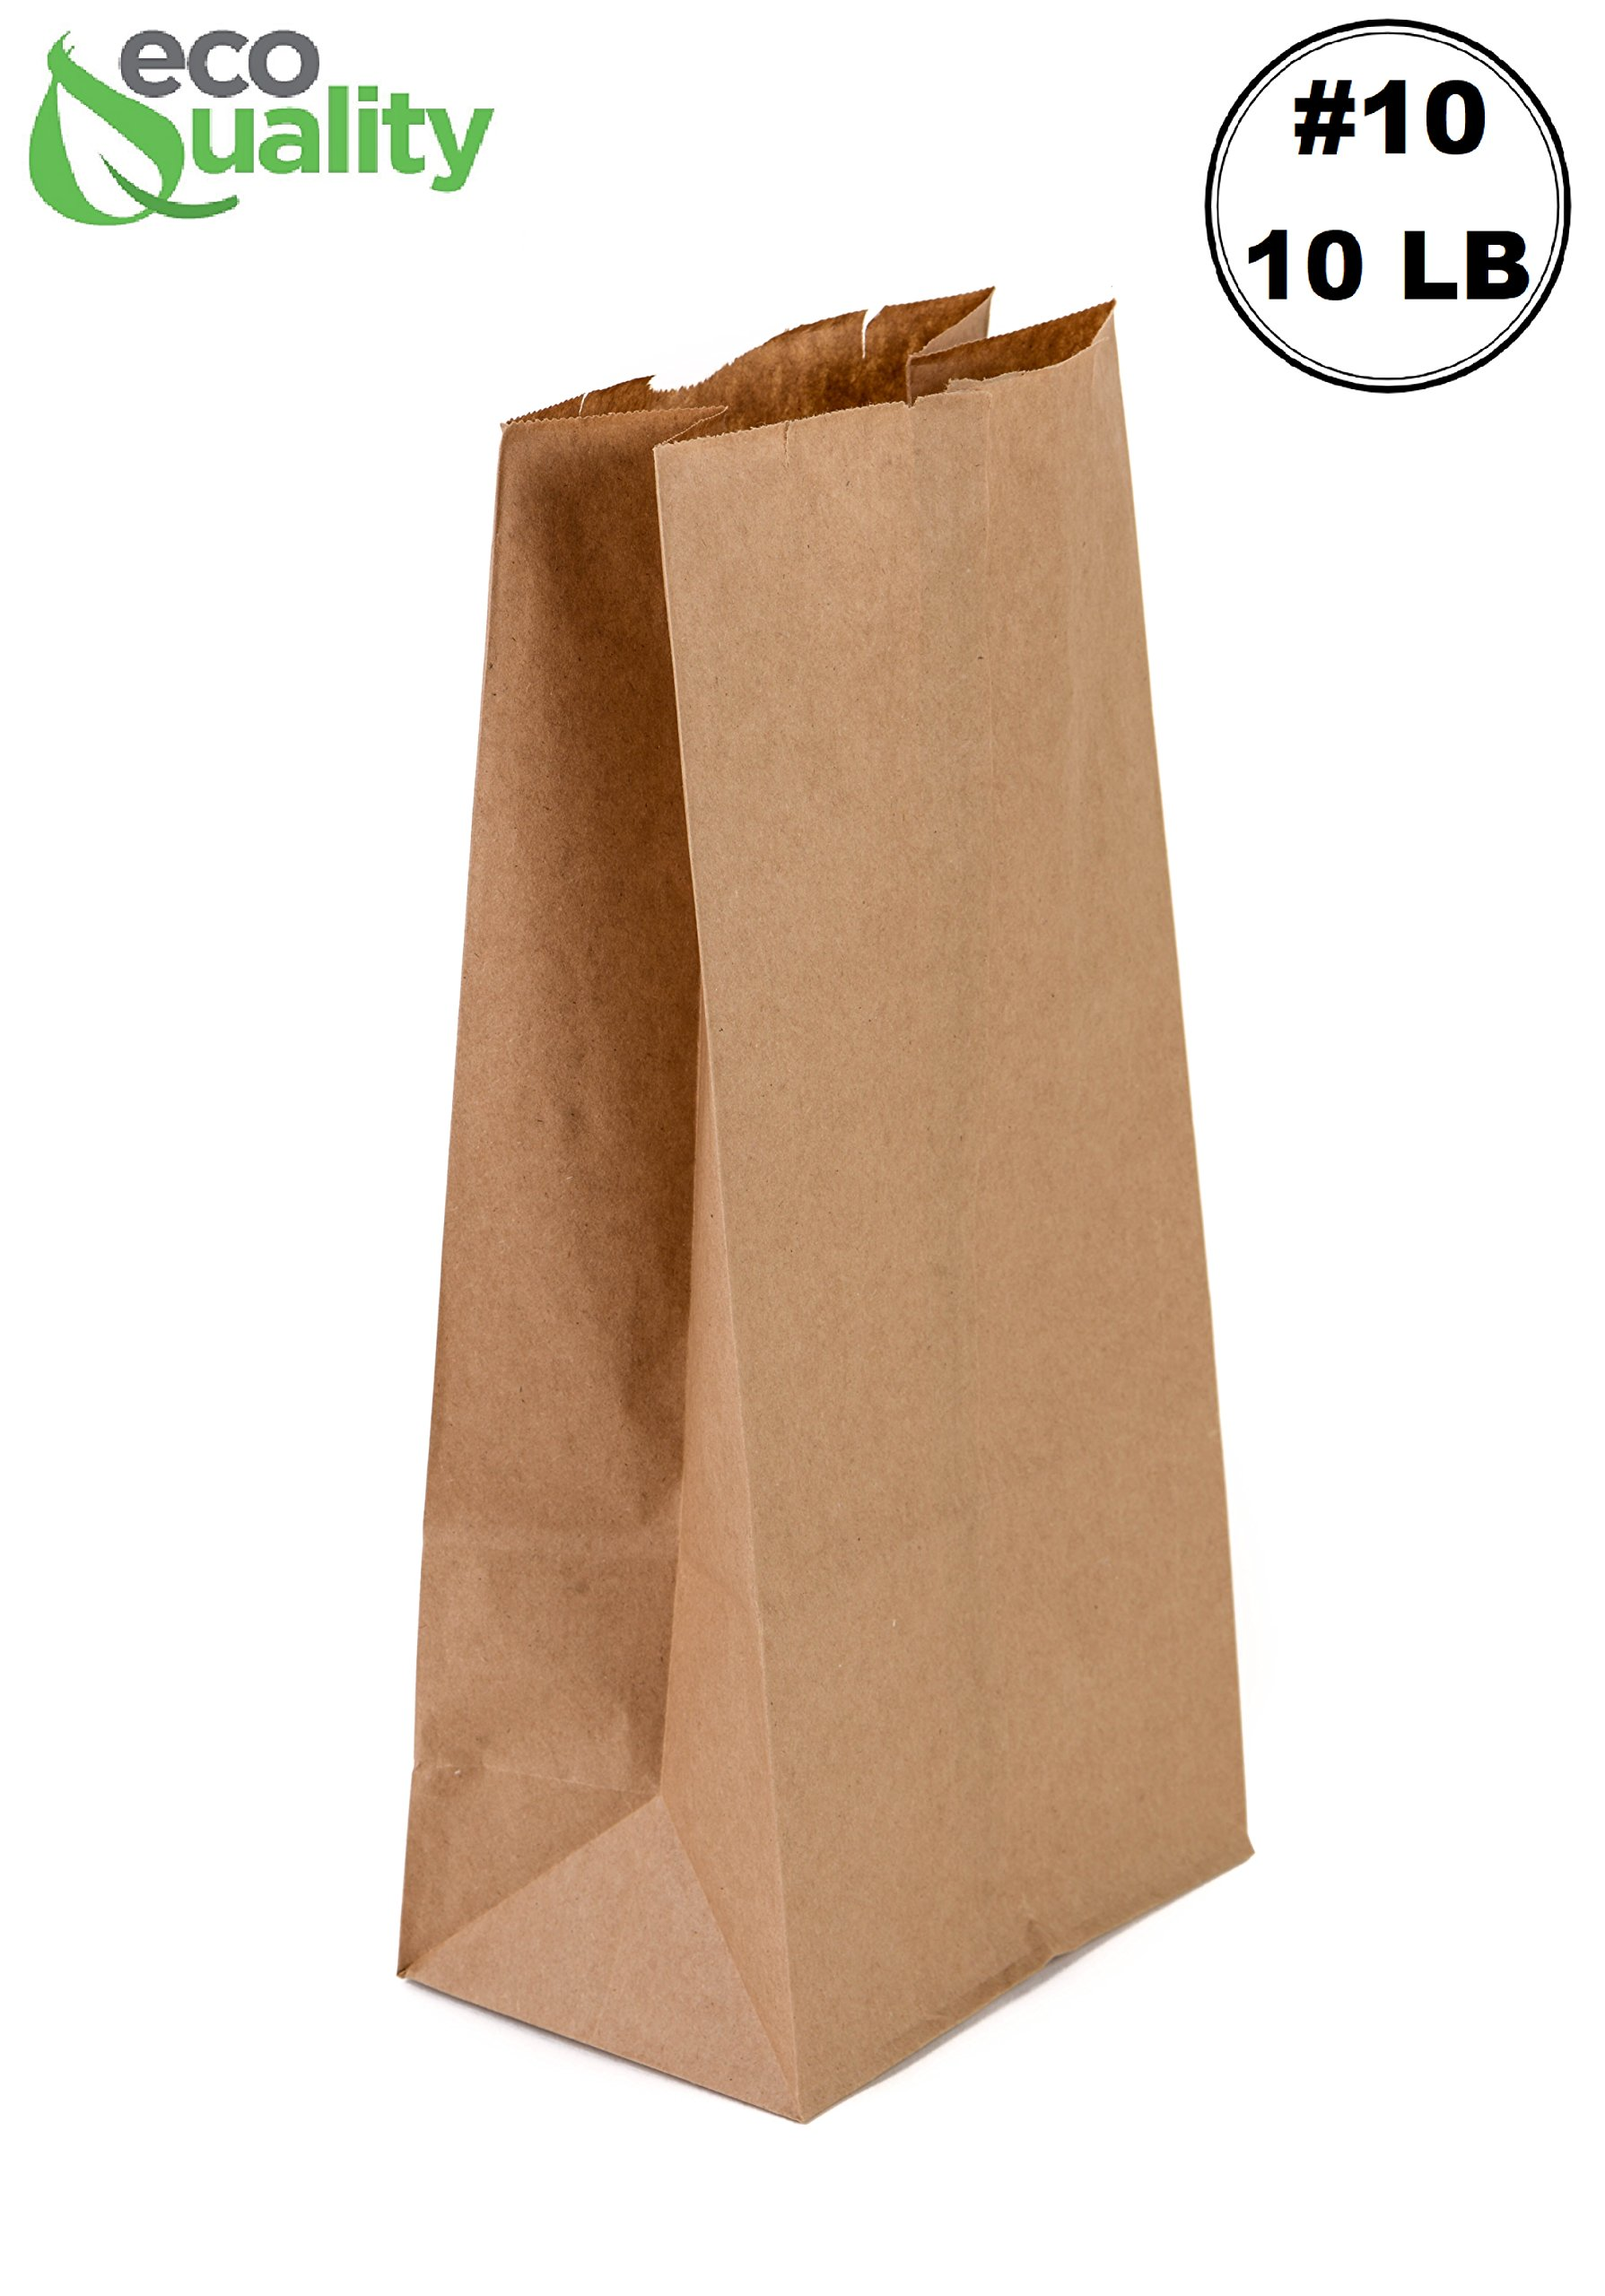 EcoQuality 1000 Brown Kraft Paper Bag (10 lb) Medium - Paper Lunch Bags, Small Snacks, Gift Bags, Grocery, Merchandise, Party Bags (6-5/16 x 4-3/16 x 13-3/8) (10 Pound Capacity)